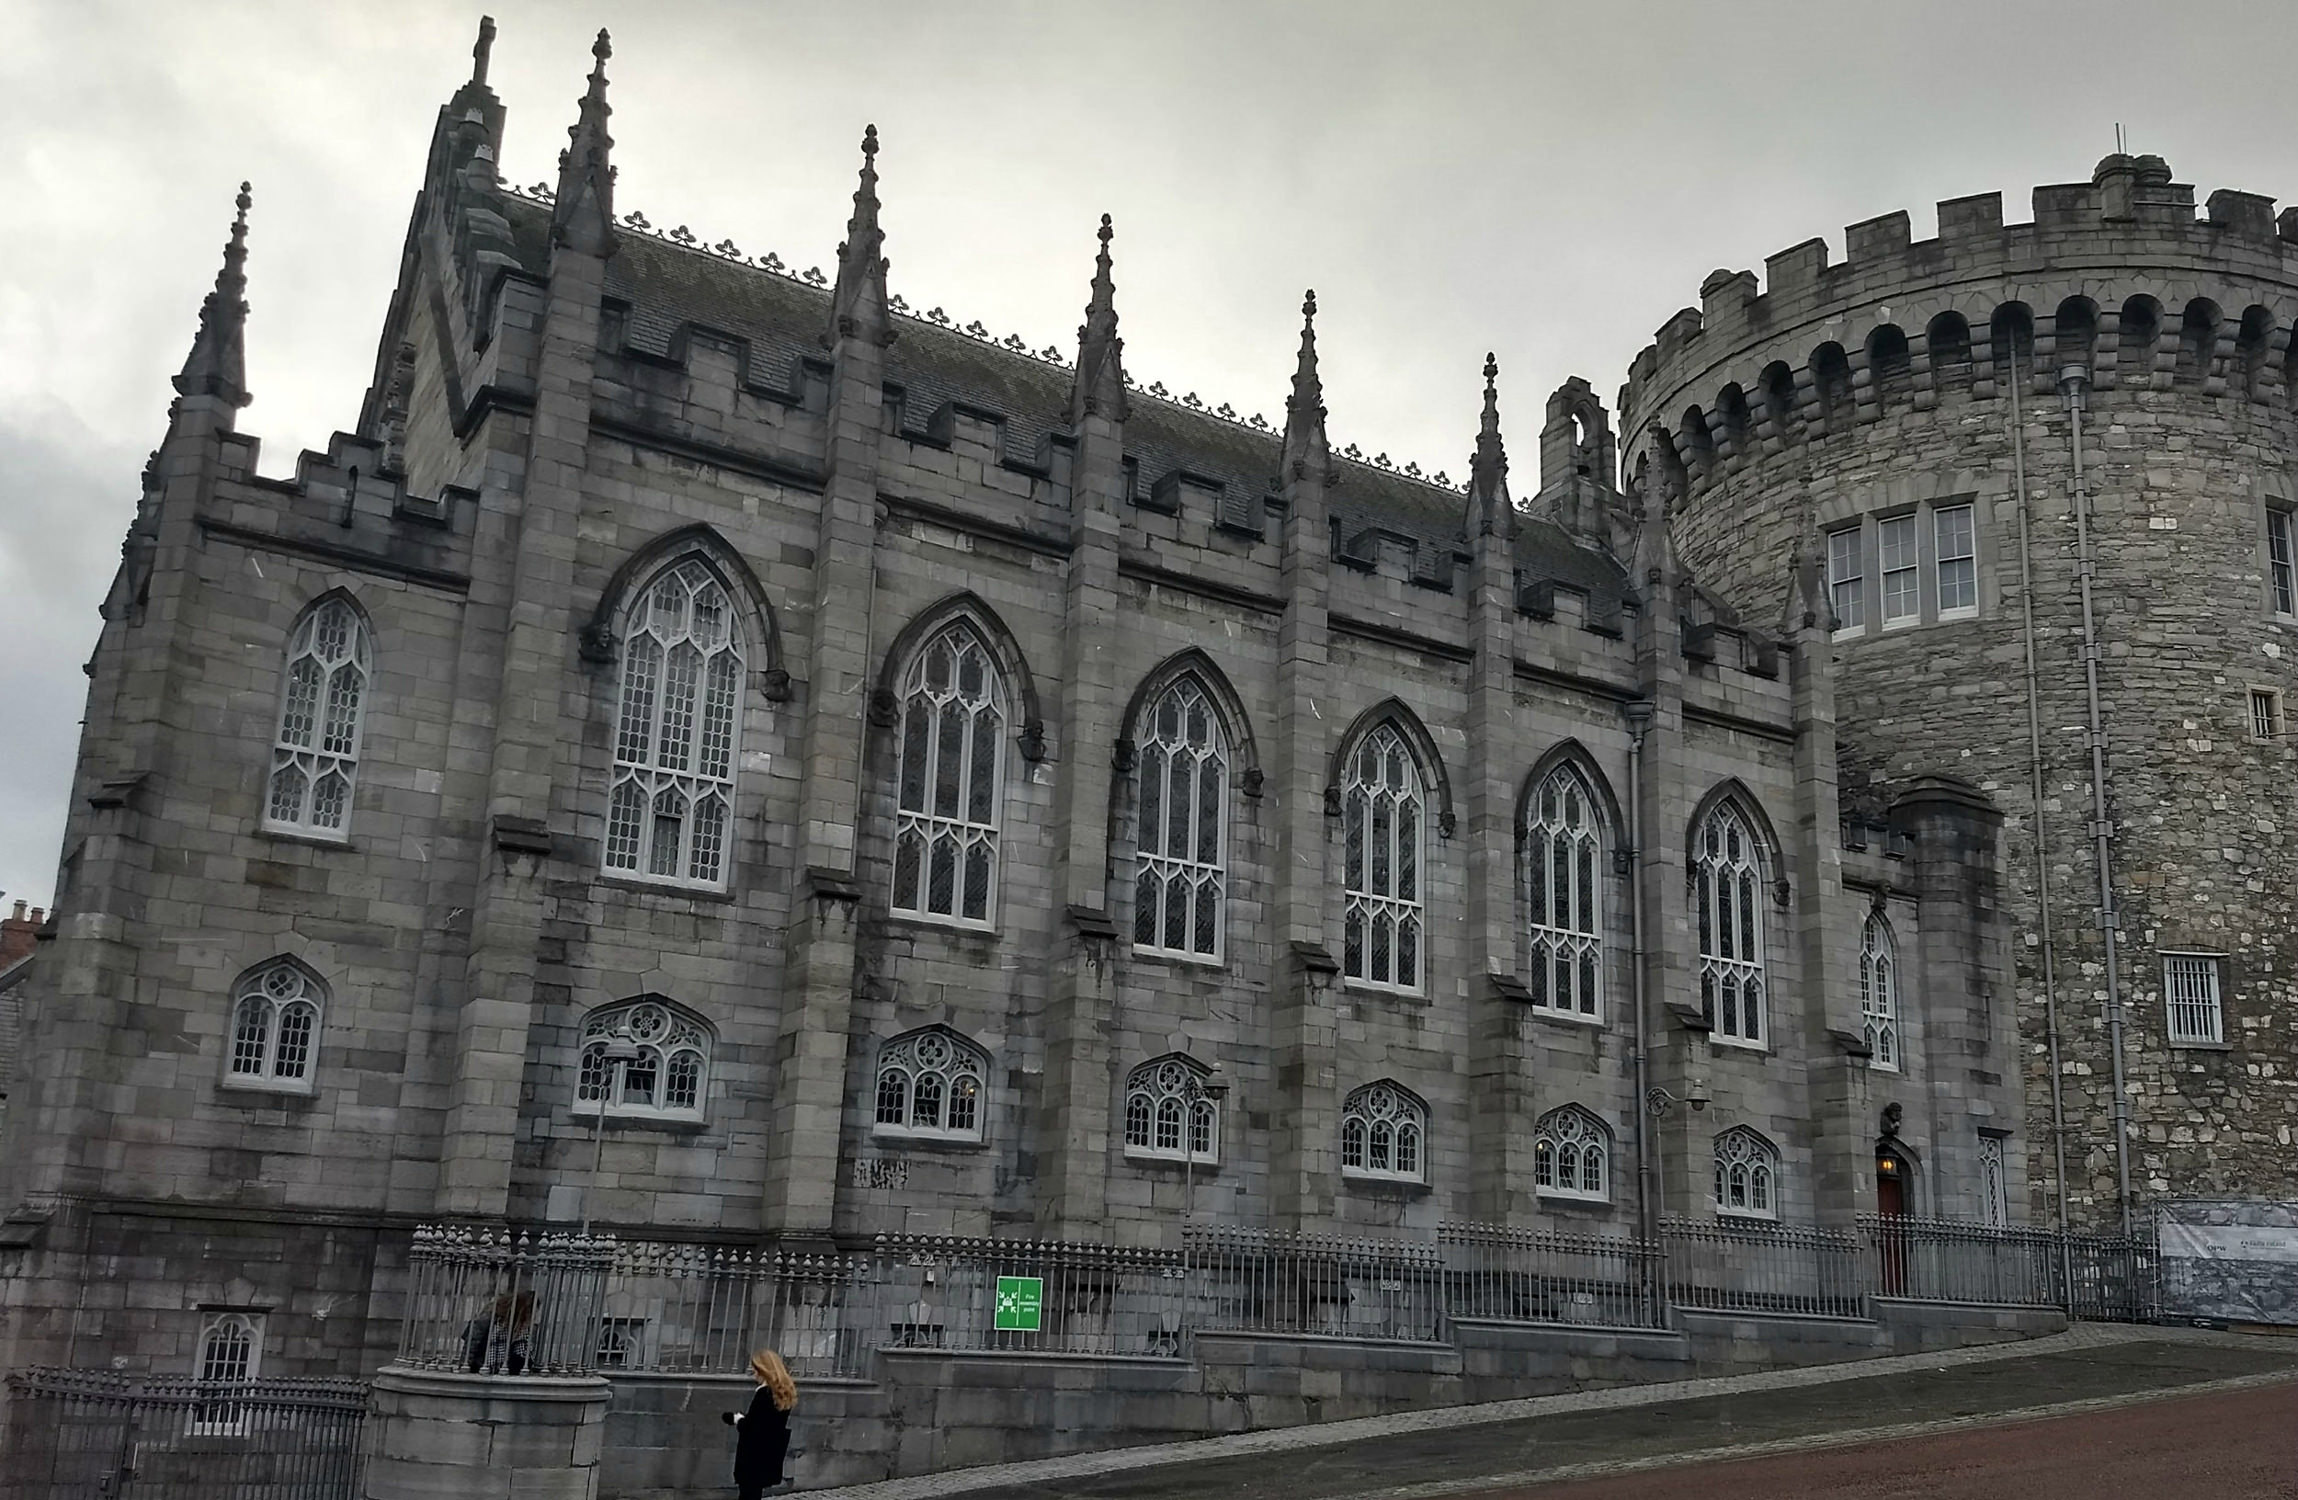 Head to Dublin Castle to see a Castle that looks like a Palace.